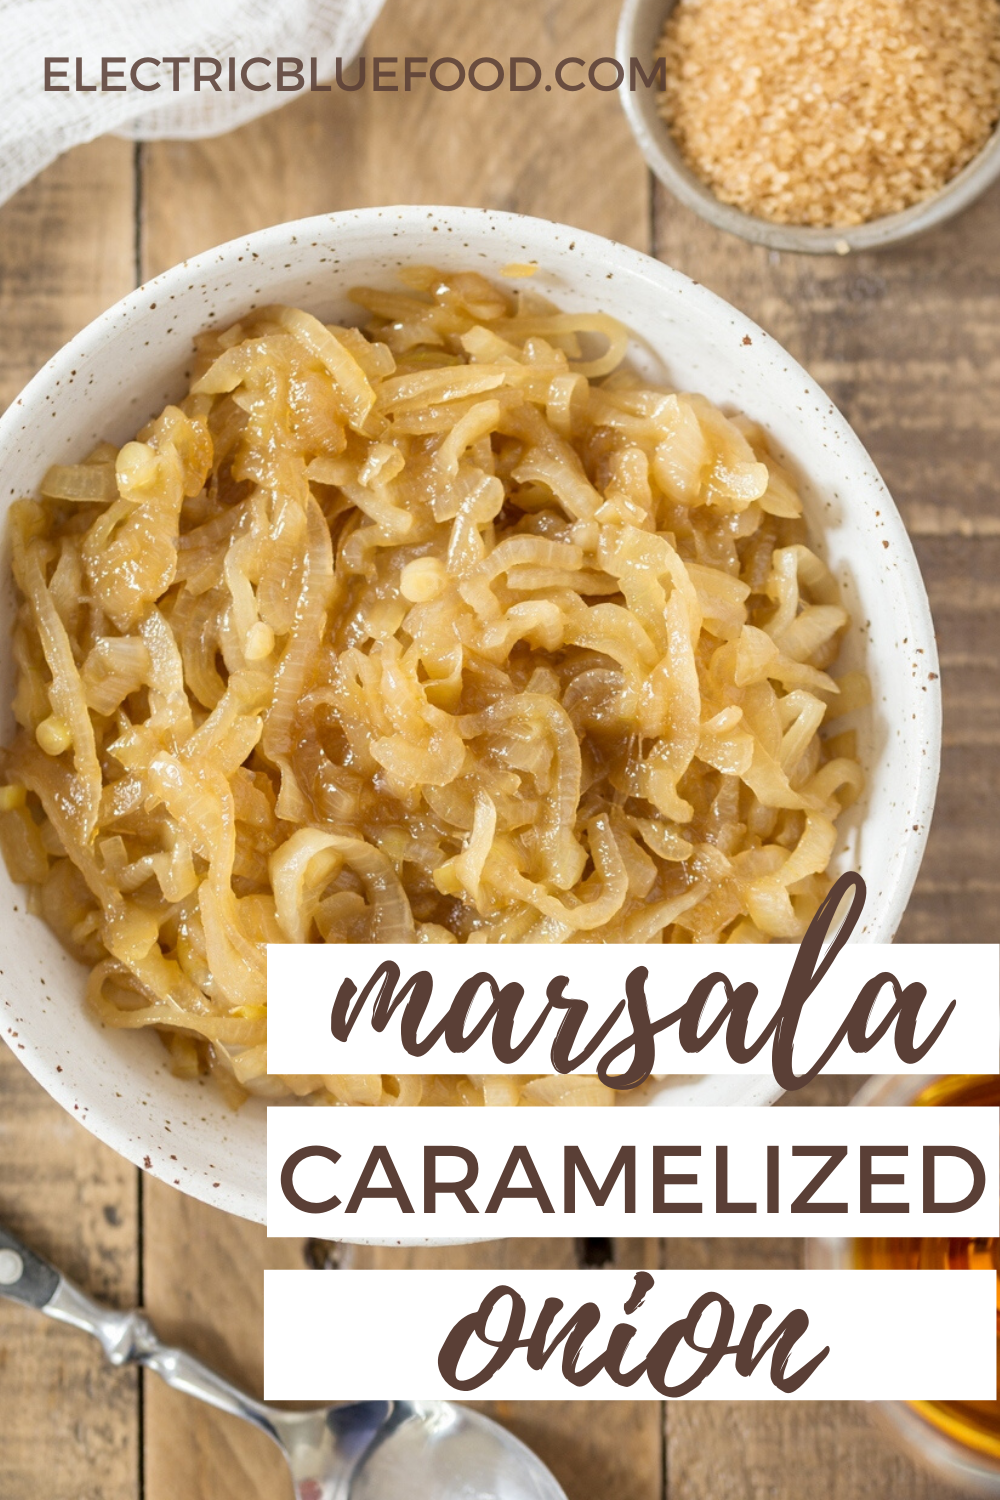 Add a hint of onion to your burger with this marsala caramelized onion relish! Marsala wine gives caramelized onions a lovely flavour depth that will make you love every spoonful. This may become your favourite secret ingredient for burgers that are always delicious.